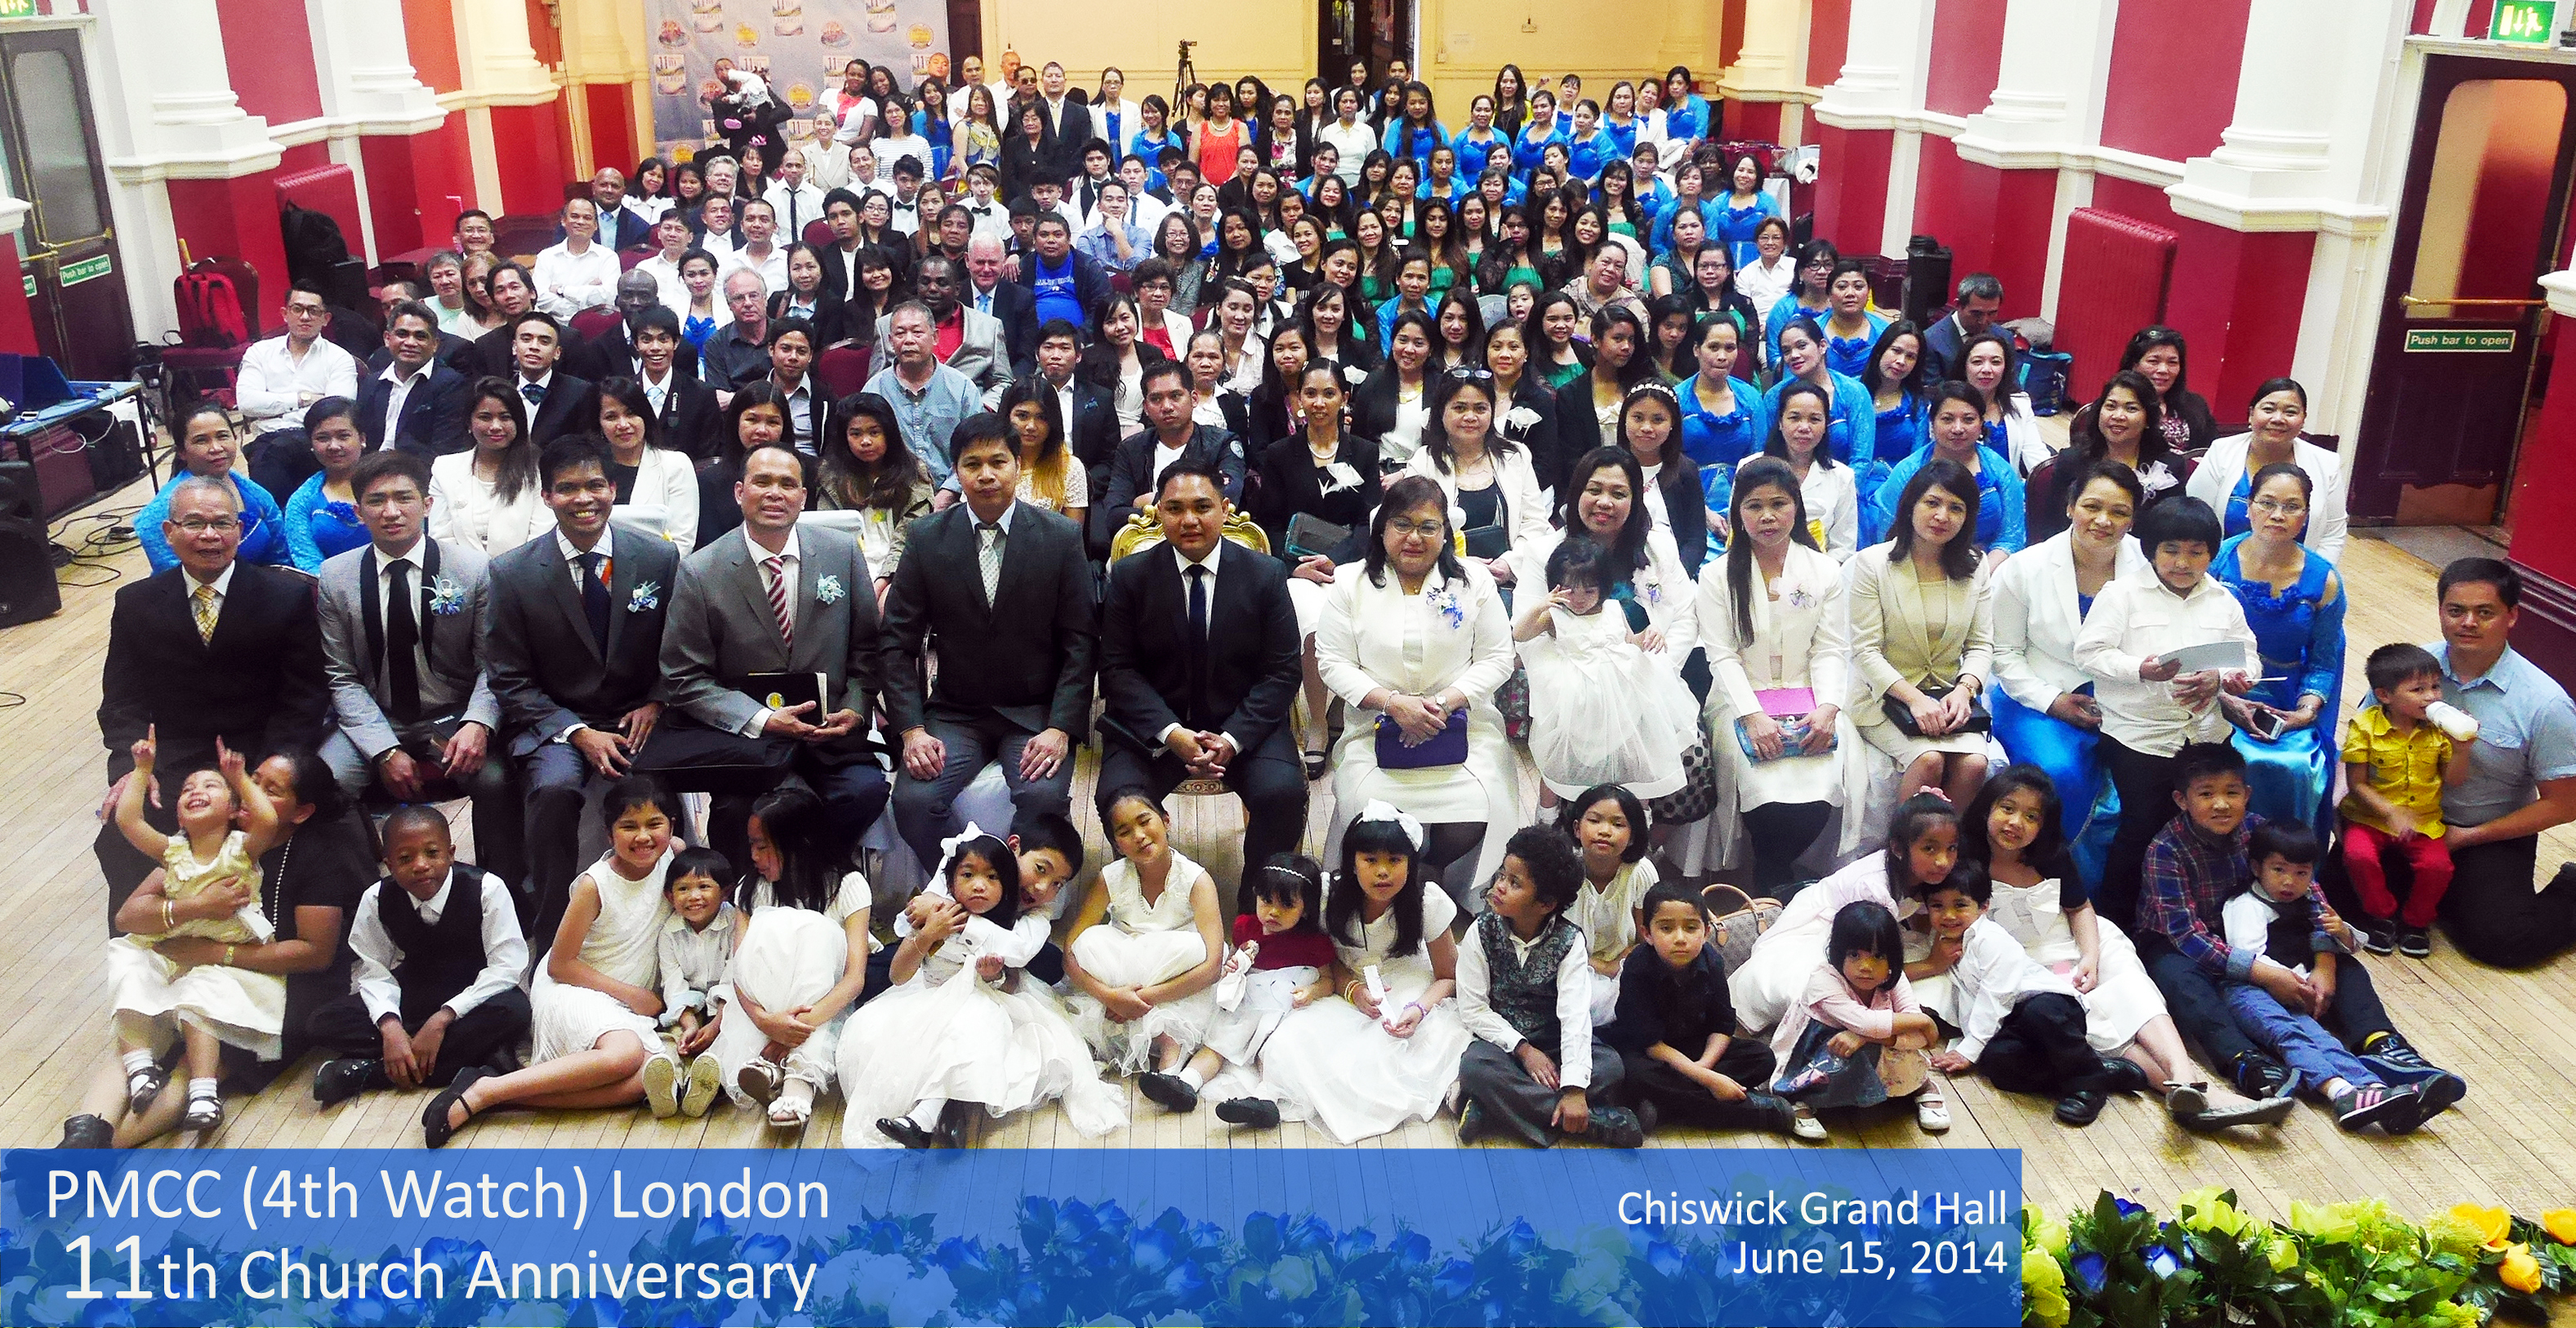 LONDON LOCALE 11th year of establishment: A celebration of God's overflowing blessings and power!